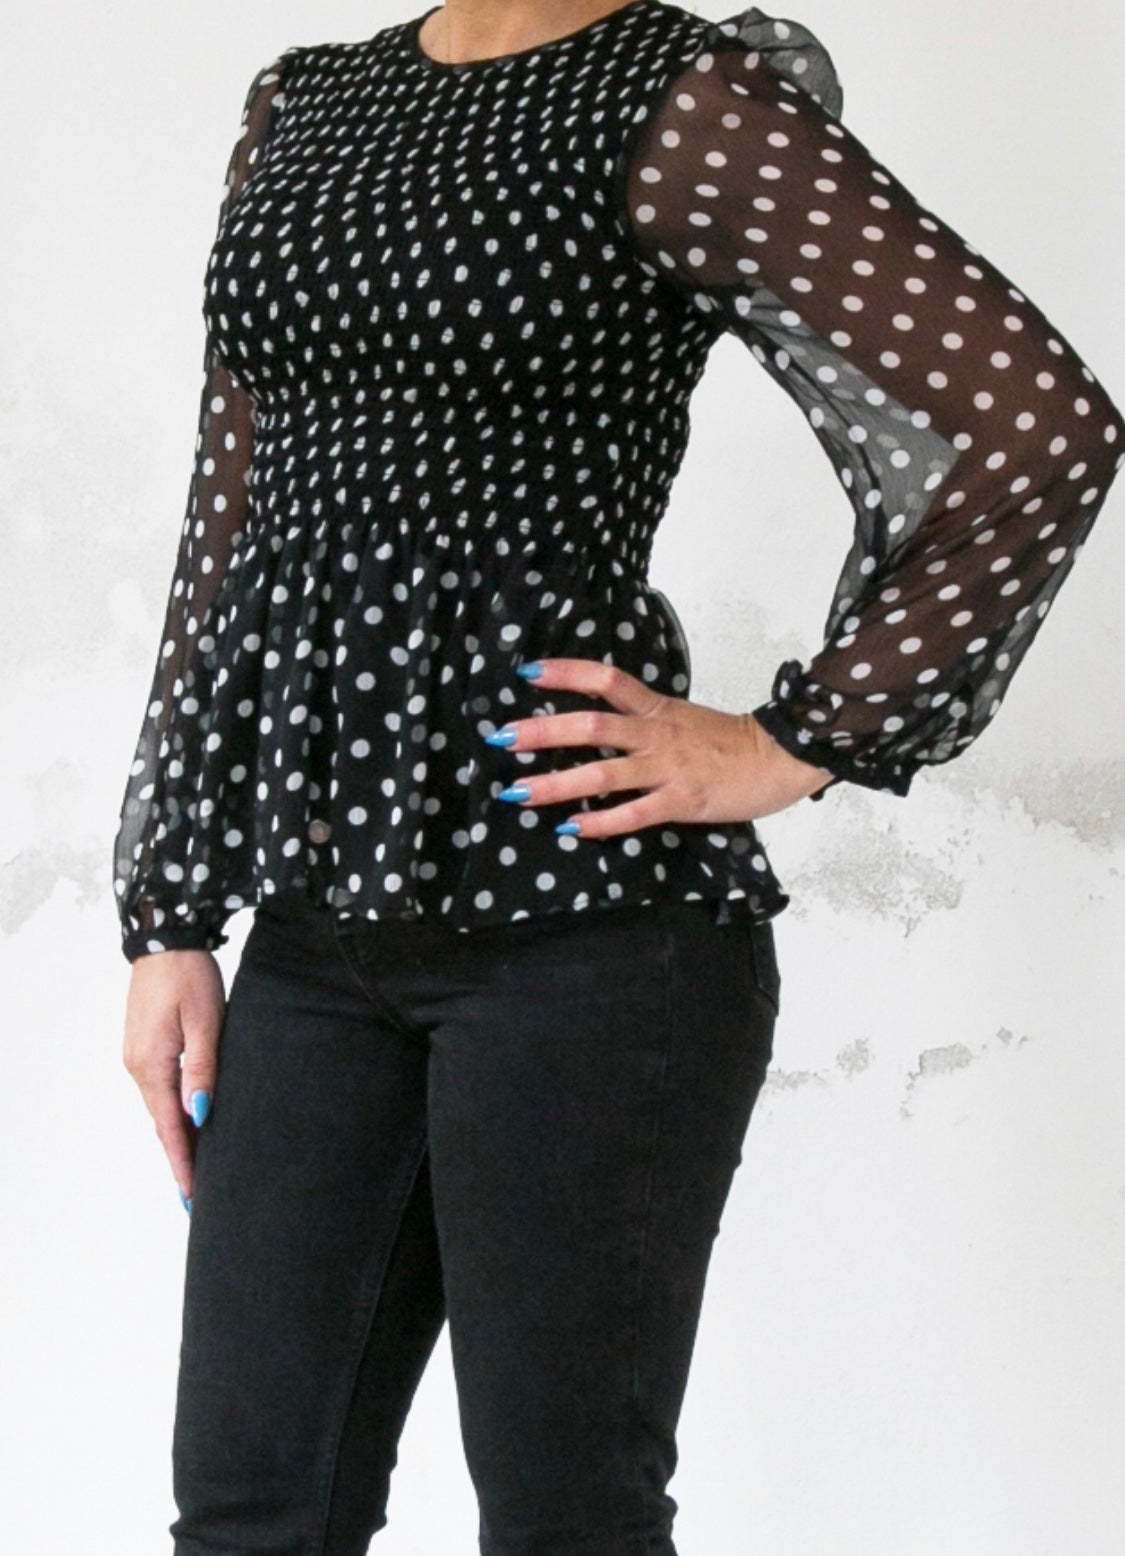 Sofie Stretch Black dots